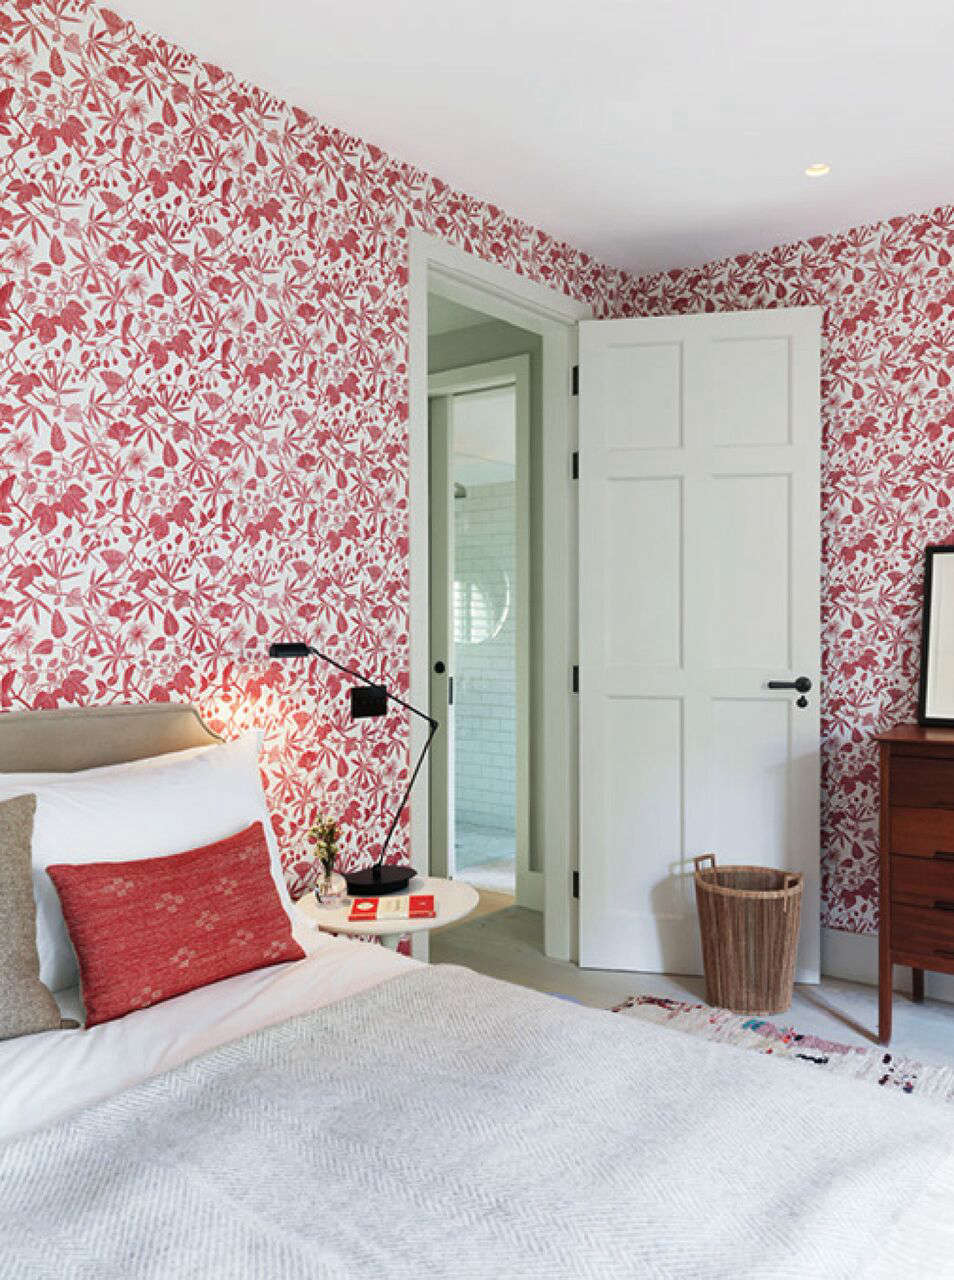 A Notting Hill Townhouse Tailored for Living by Charles Mellersh Marthe Armitage Hop Garden wallpaper in the master bedroom of a remodeled Notting Hill townhouse with interior design by Charles Mellersh   Remodelista